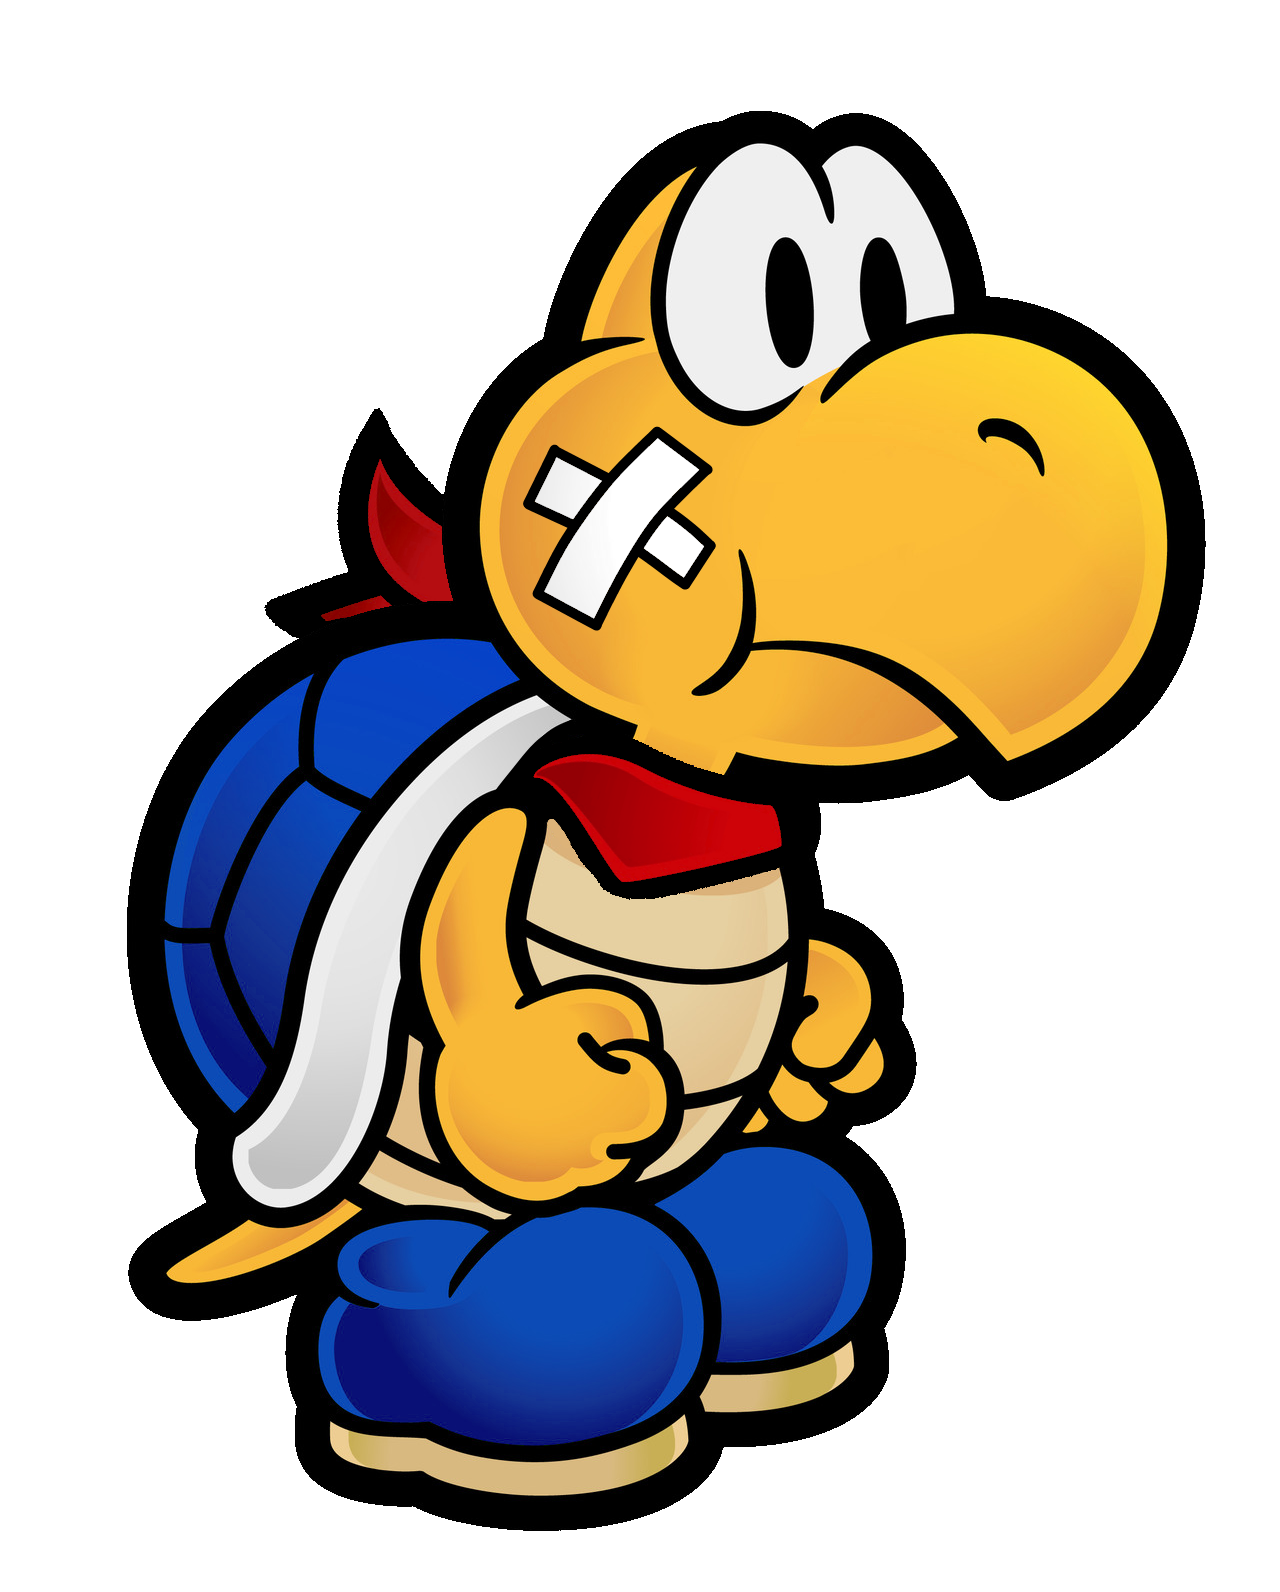 Paper mario coloring pages to print - 70 Best Images About Gaming On Pinterest Mansions Super Mario Bros And Paper